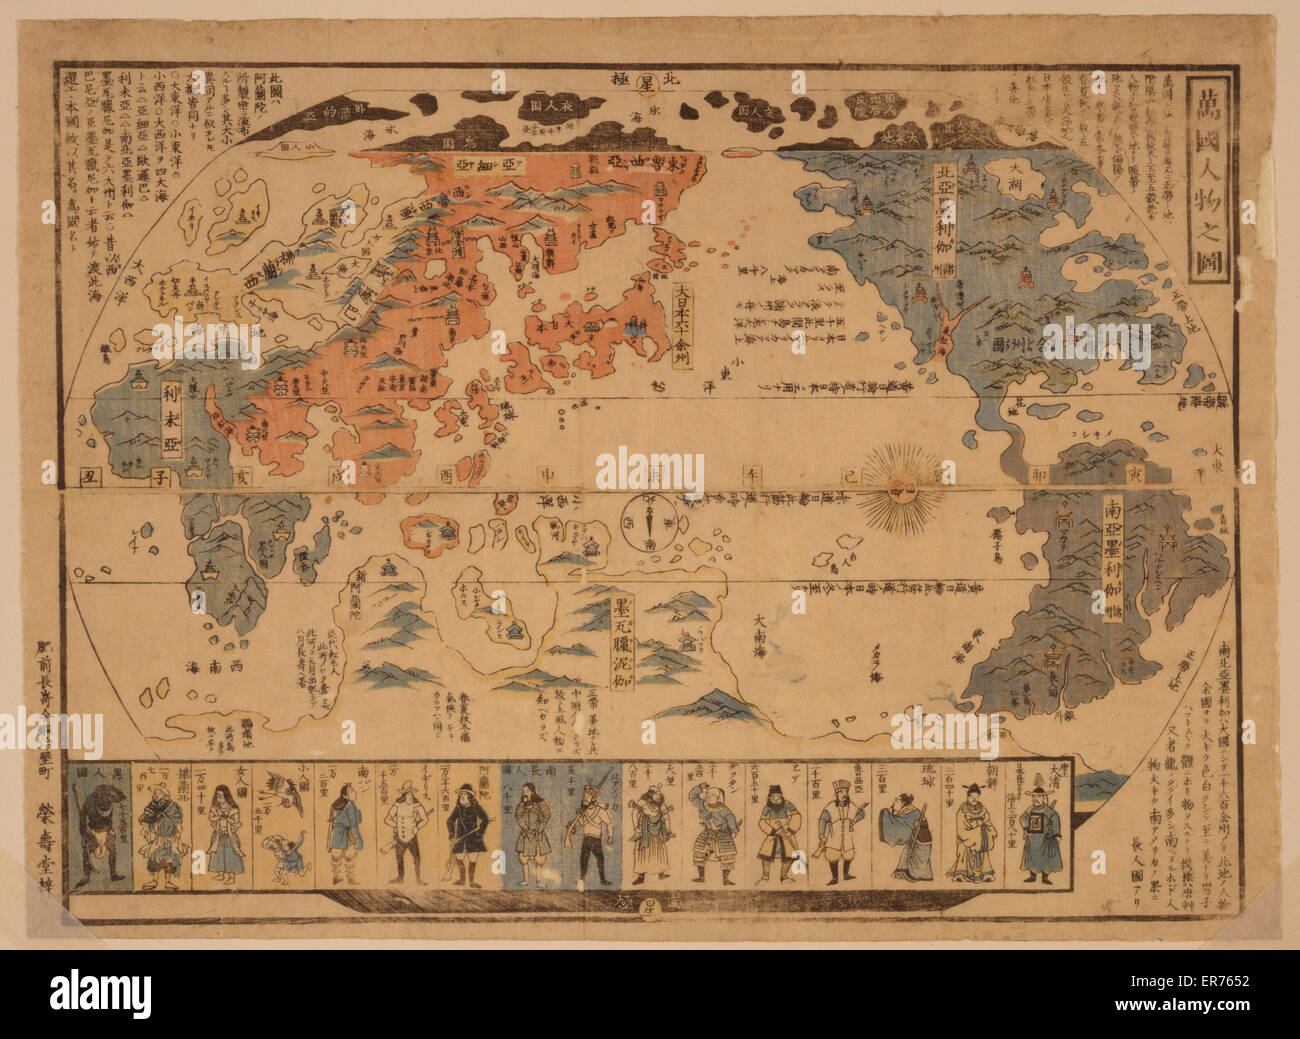 People of many nations. Japanese diptych print shows a map of the ...